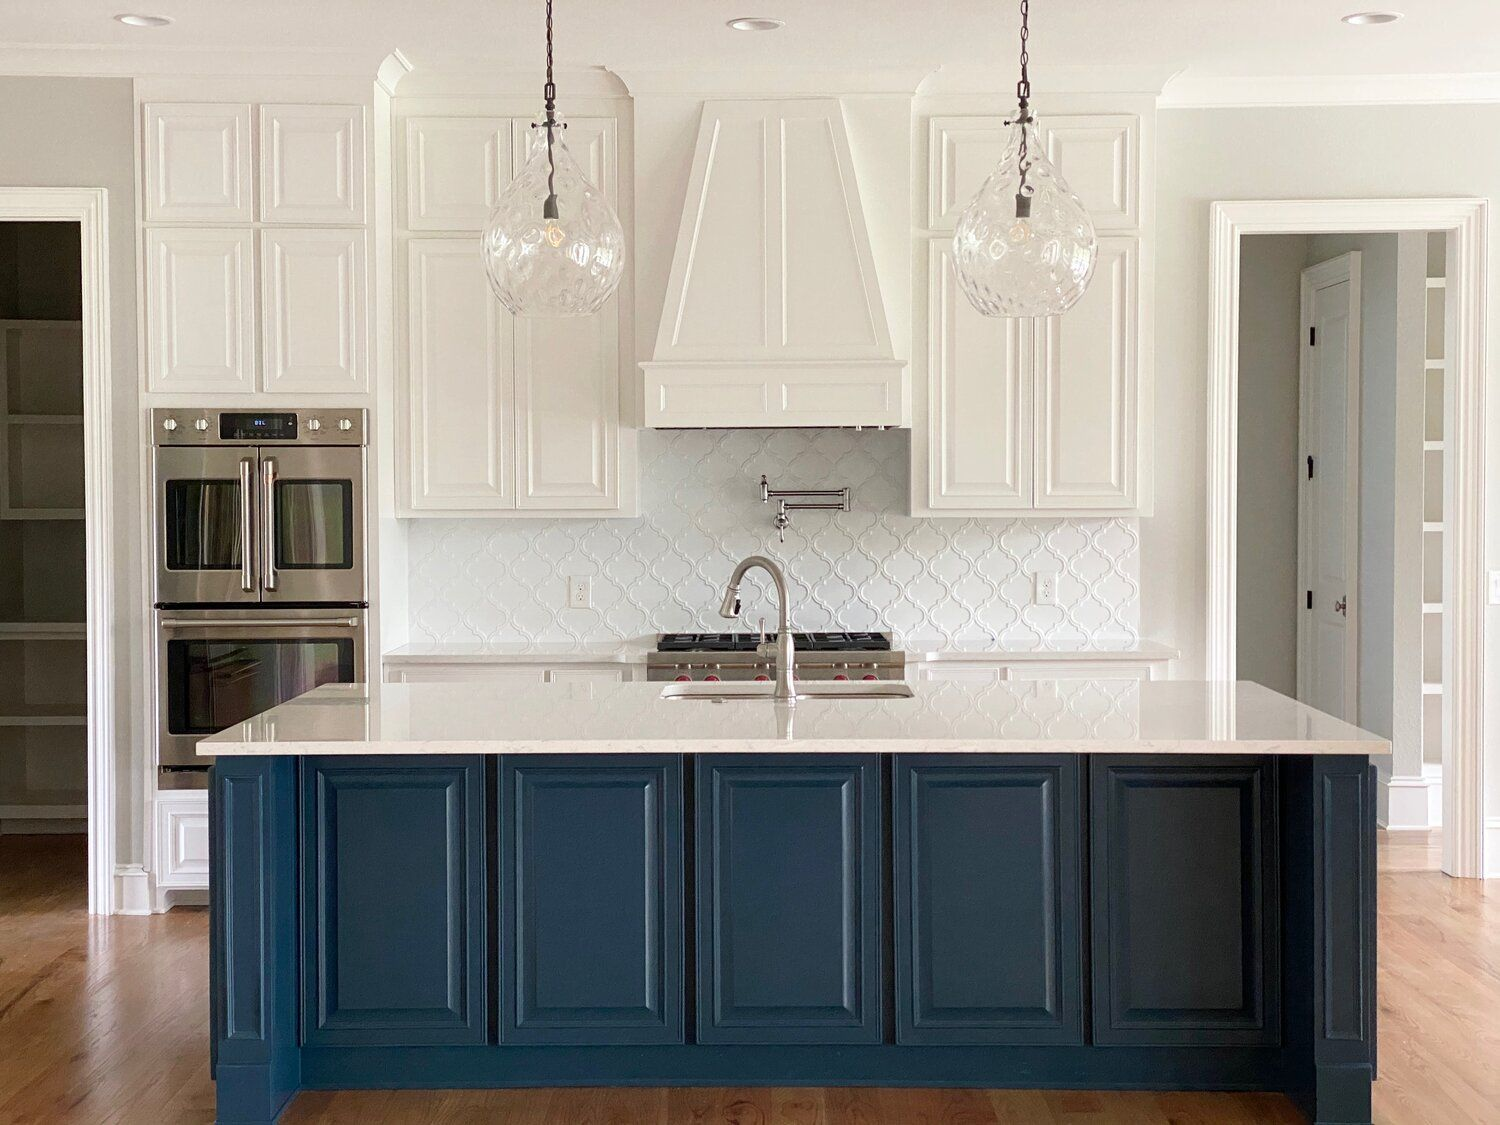 Jennifer Taylor Design Tallahassee Florida Lake Pisgah Project Blue Island White Kitchen Arabesqu In 2020 Kitchen Island Design Linen Cabinets Kitchen Design